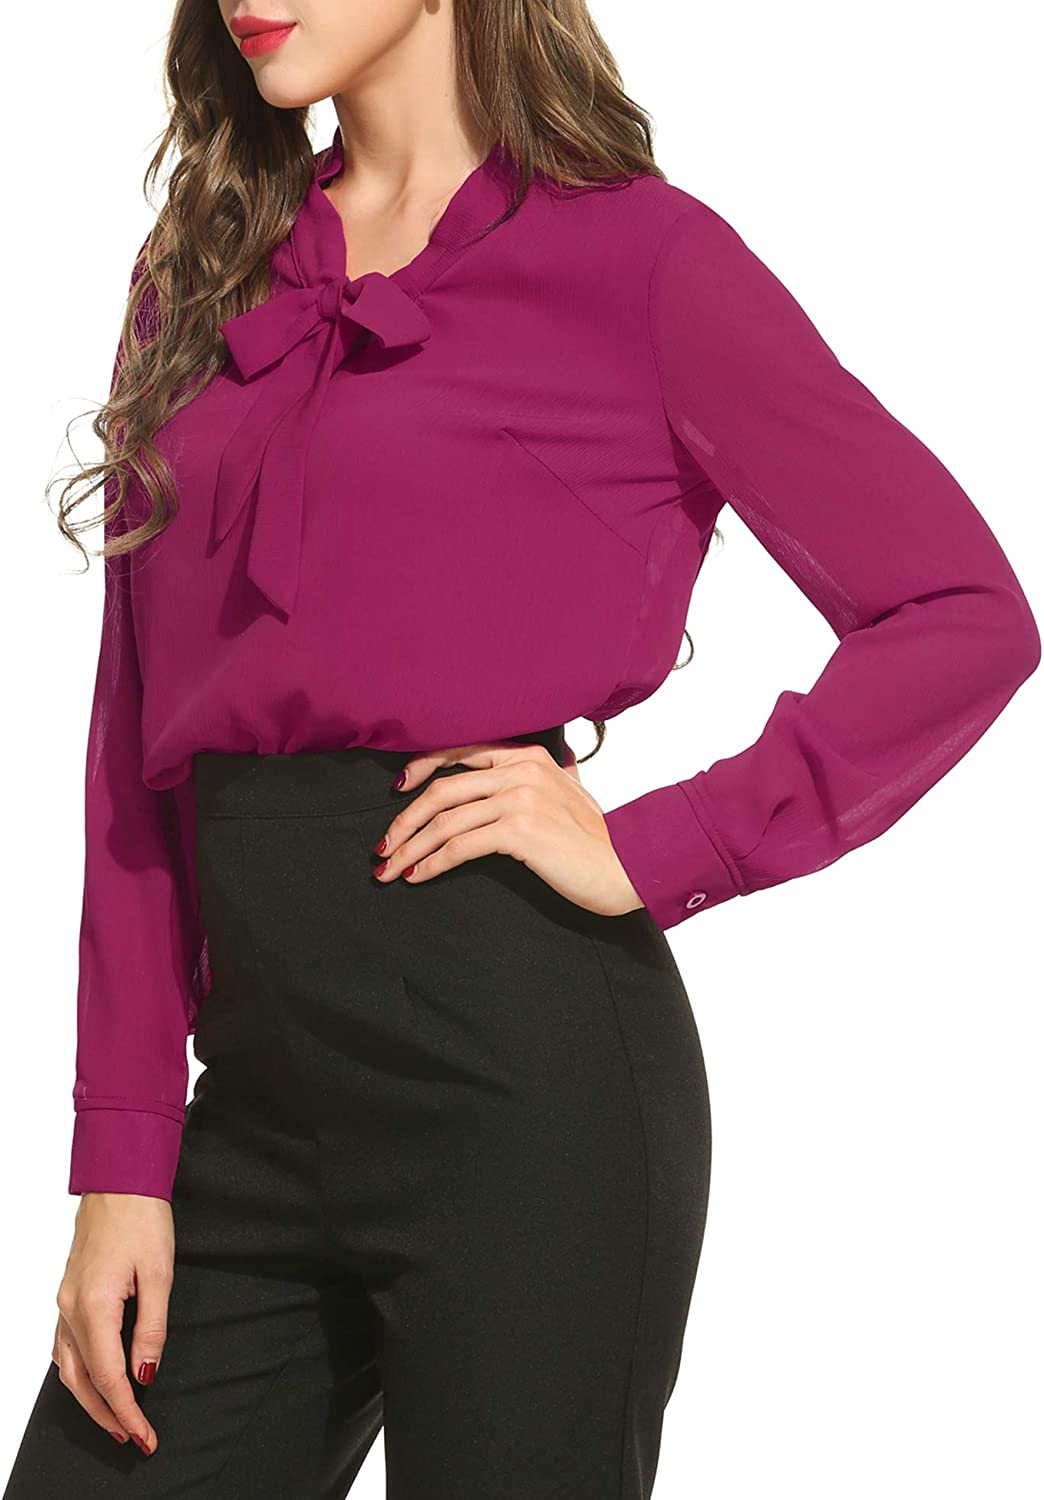 ACEVOG Womens Bow Tie Neck Long//Short Sleeve Casual Office Work Chiffon Blouse Shirts Tops